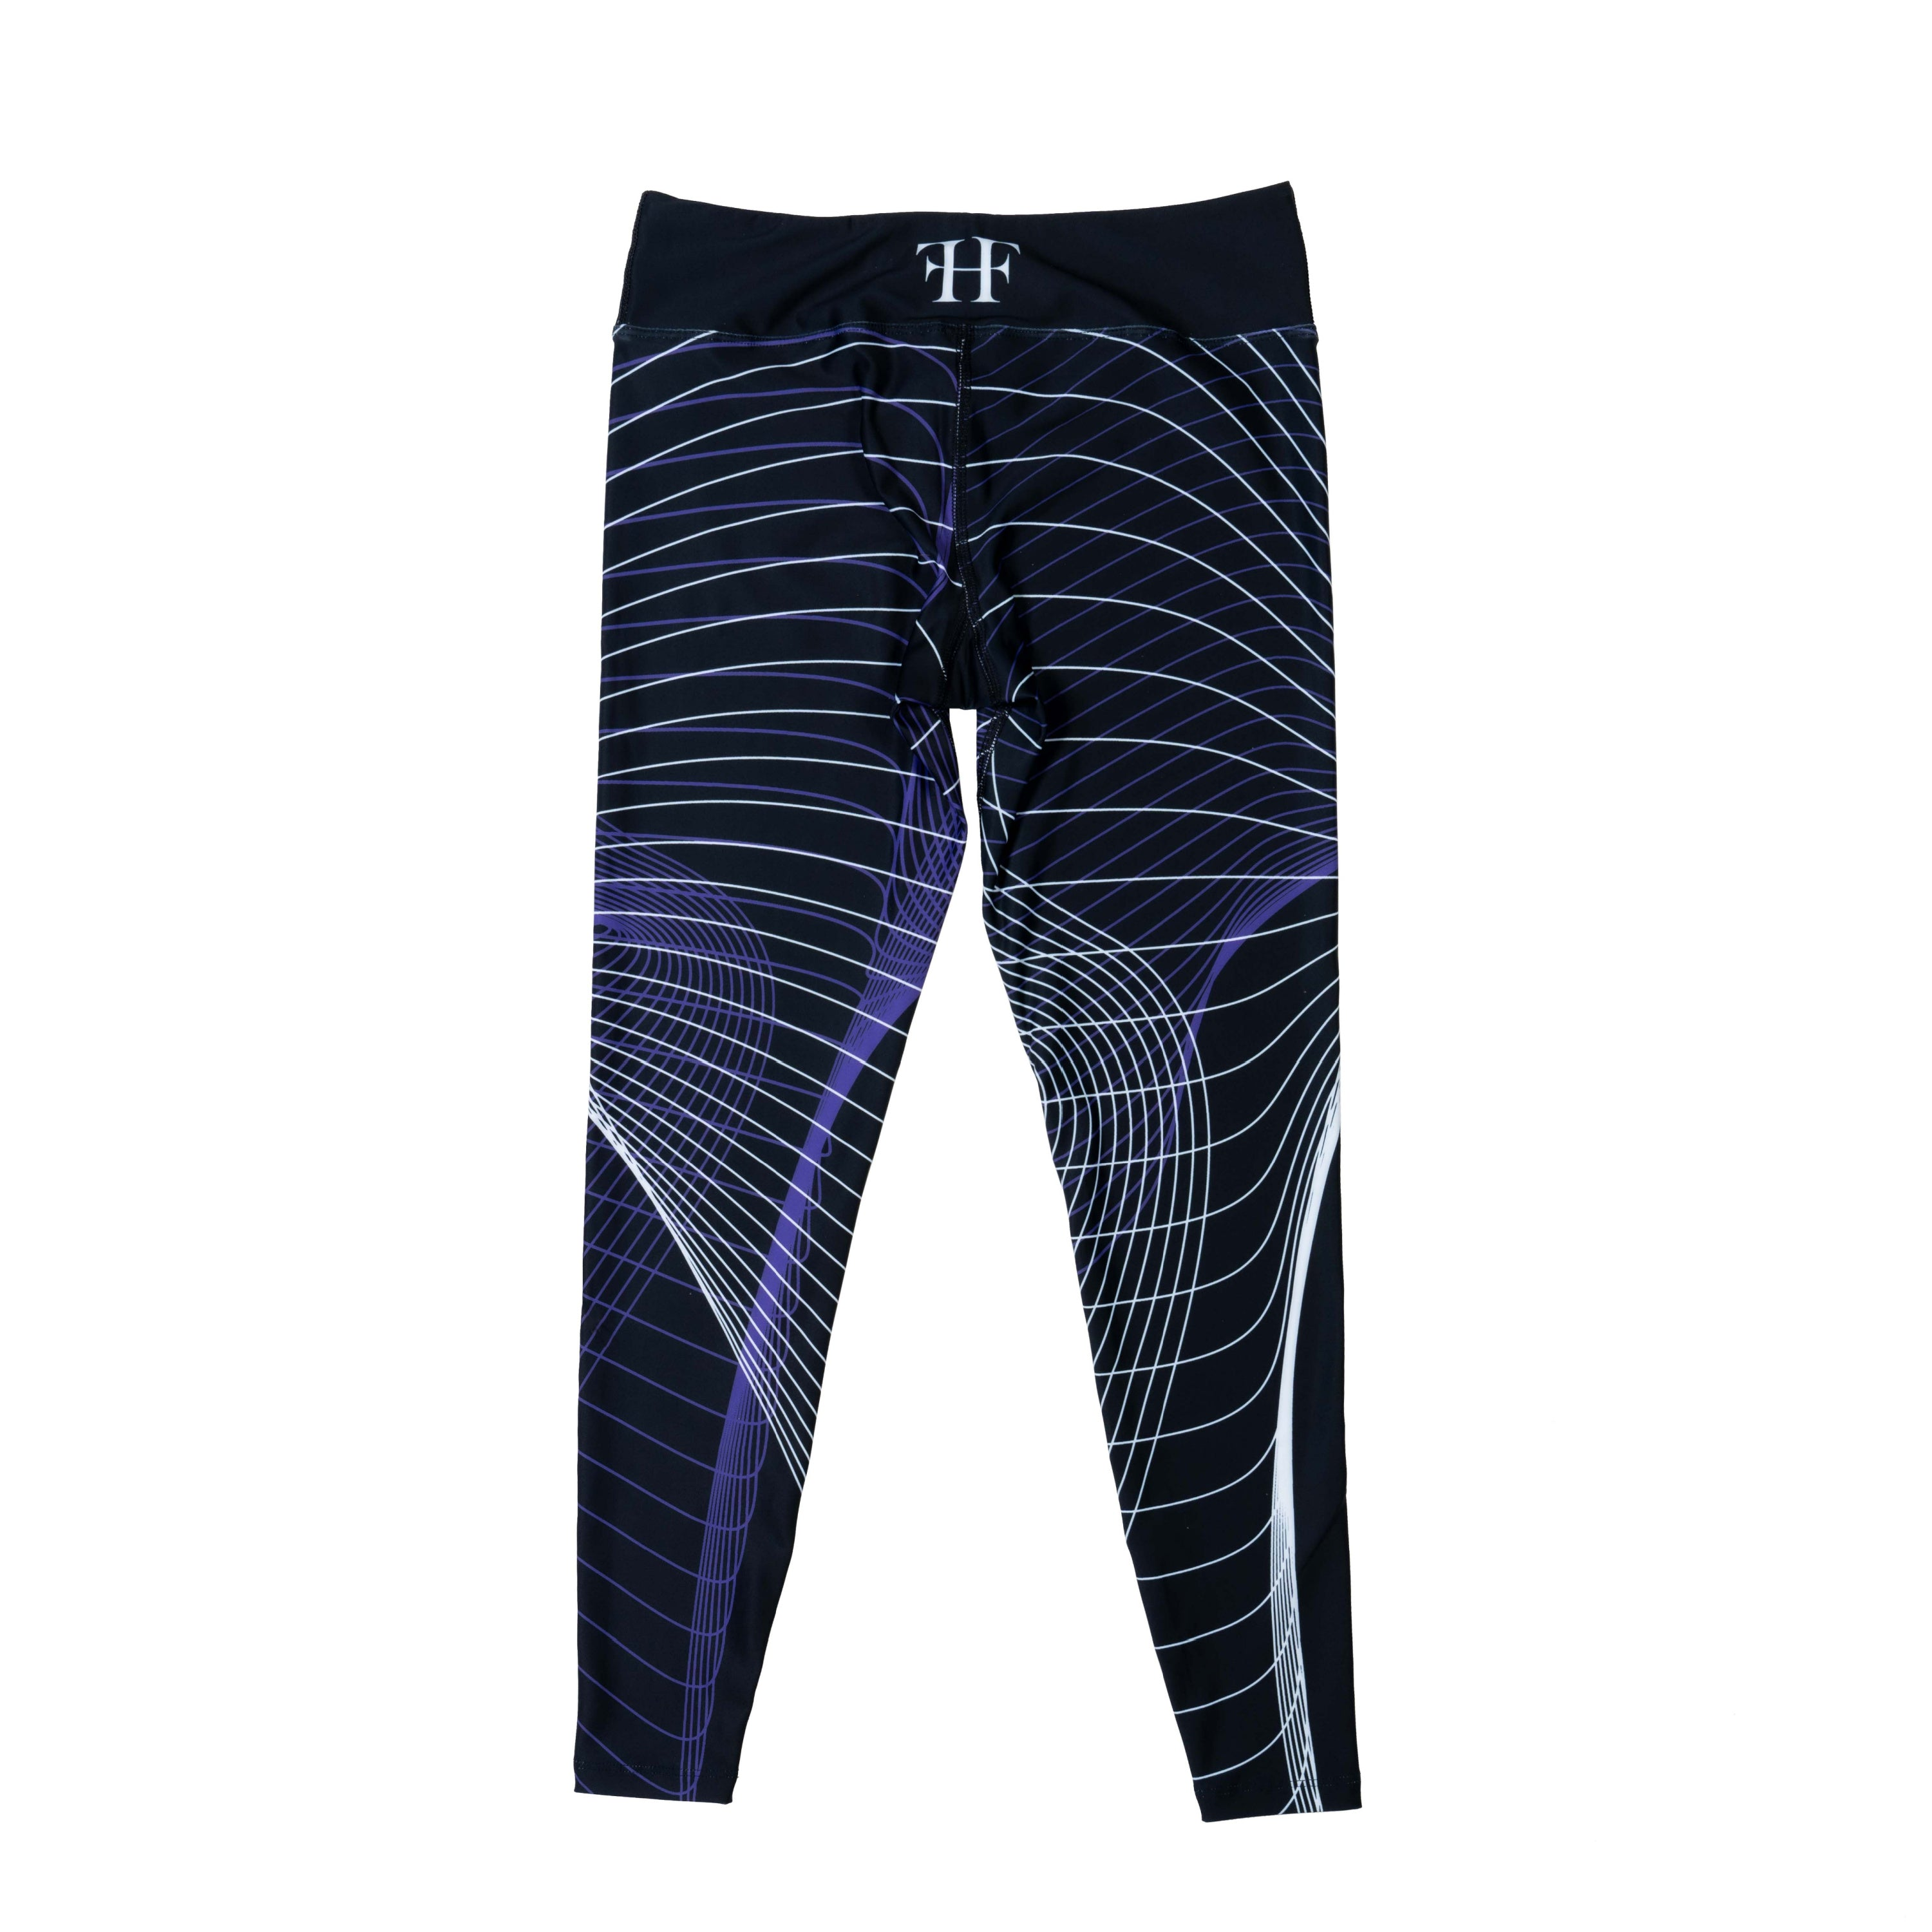 FREQ 06: Intuition Leggings